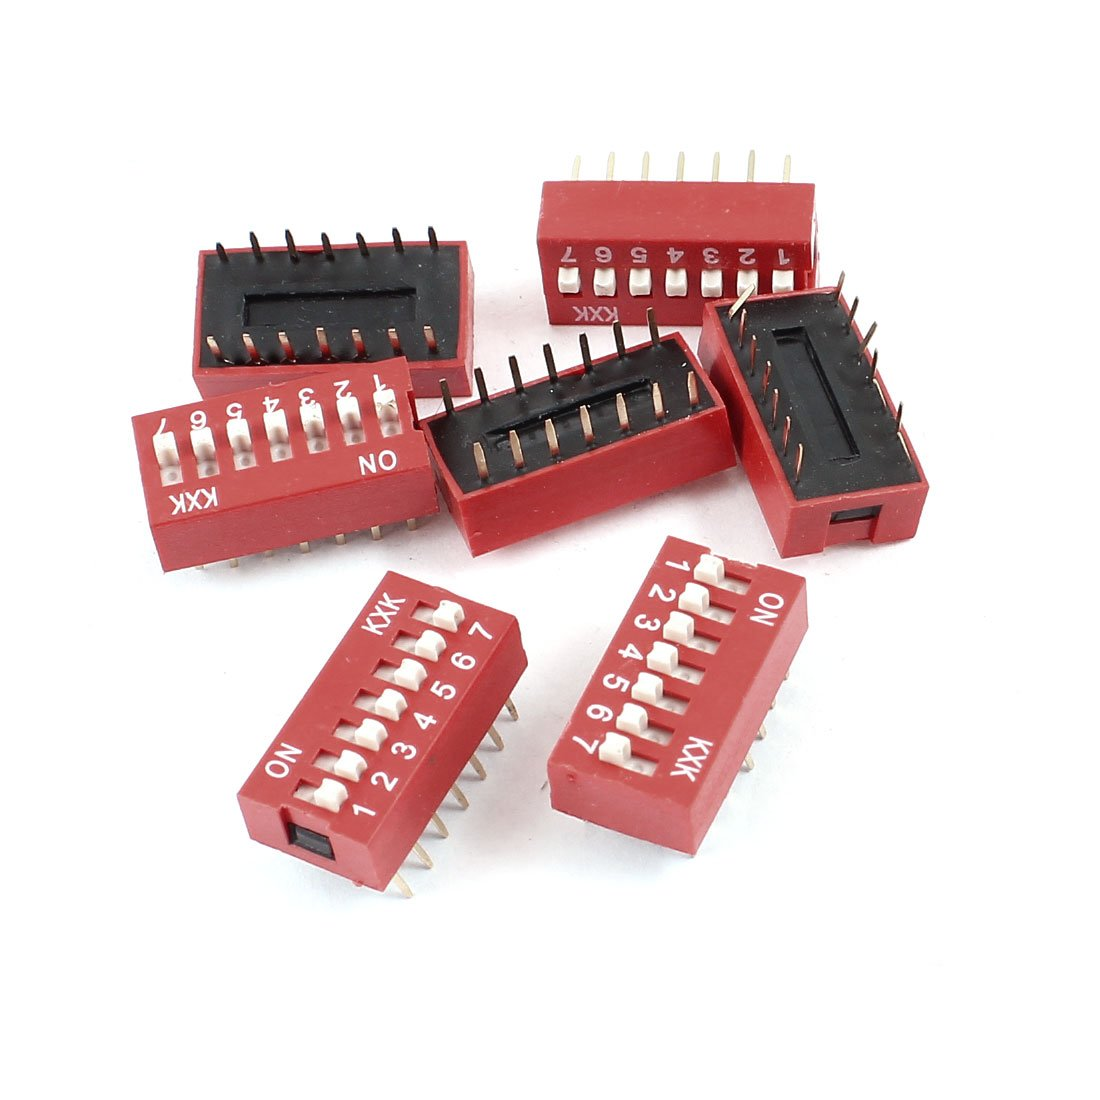 Slide Type Dual Row 14 Pin 7 Positions Way DIP Key Switch 6Pcs Sourcingmap a14061000ux0436